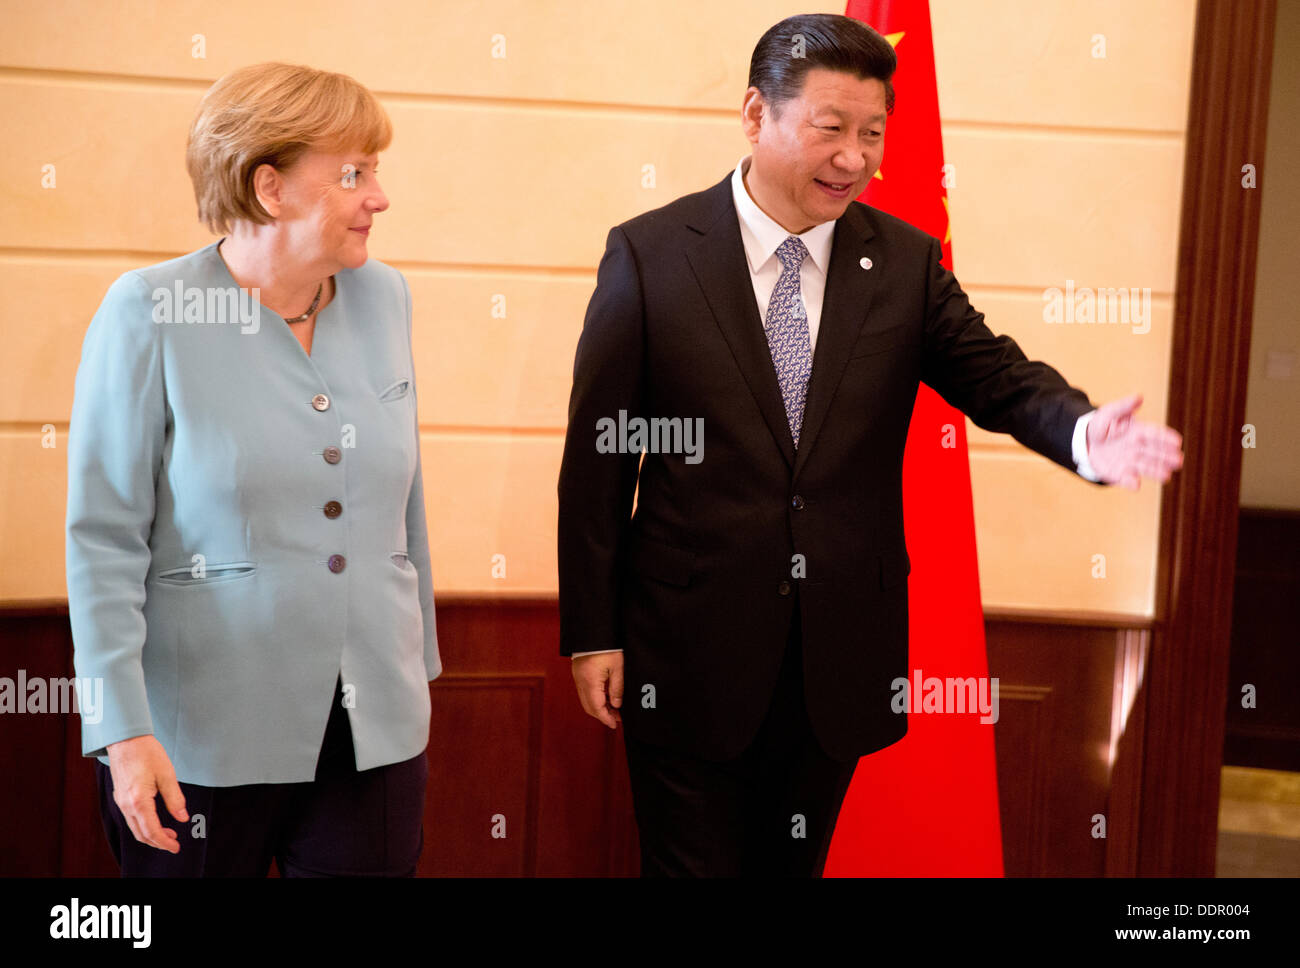 St. Petersburg, Russia. 06th Sep, 2013. German Chancellor Angela Merkel is welcomed by China's President Xi Jingping Stock Photo